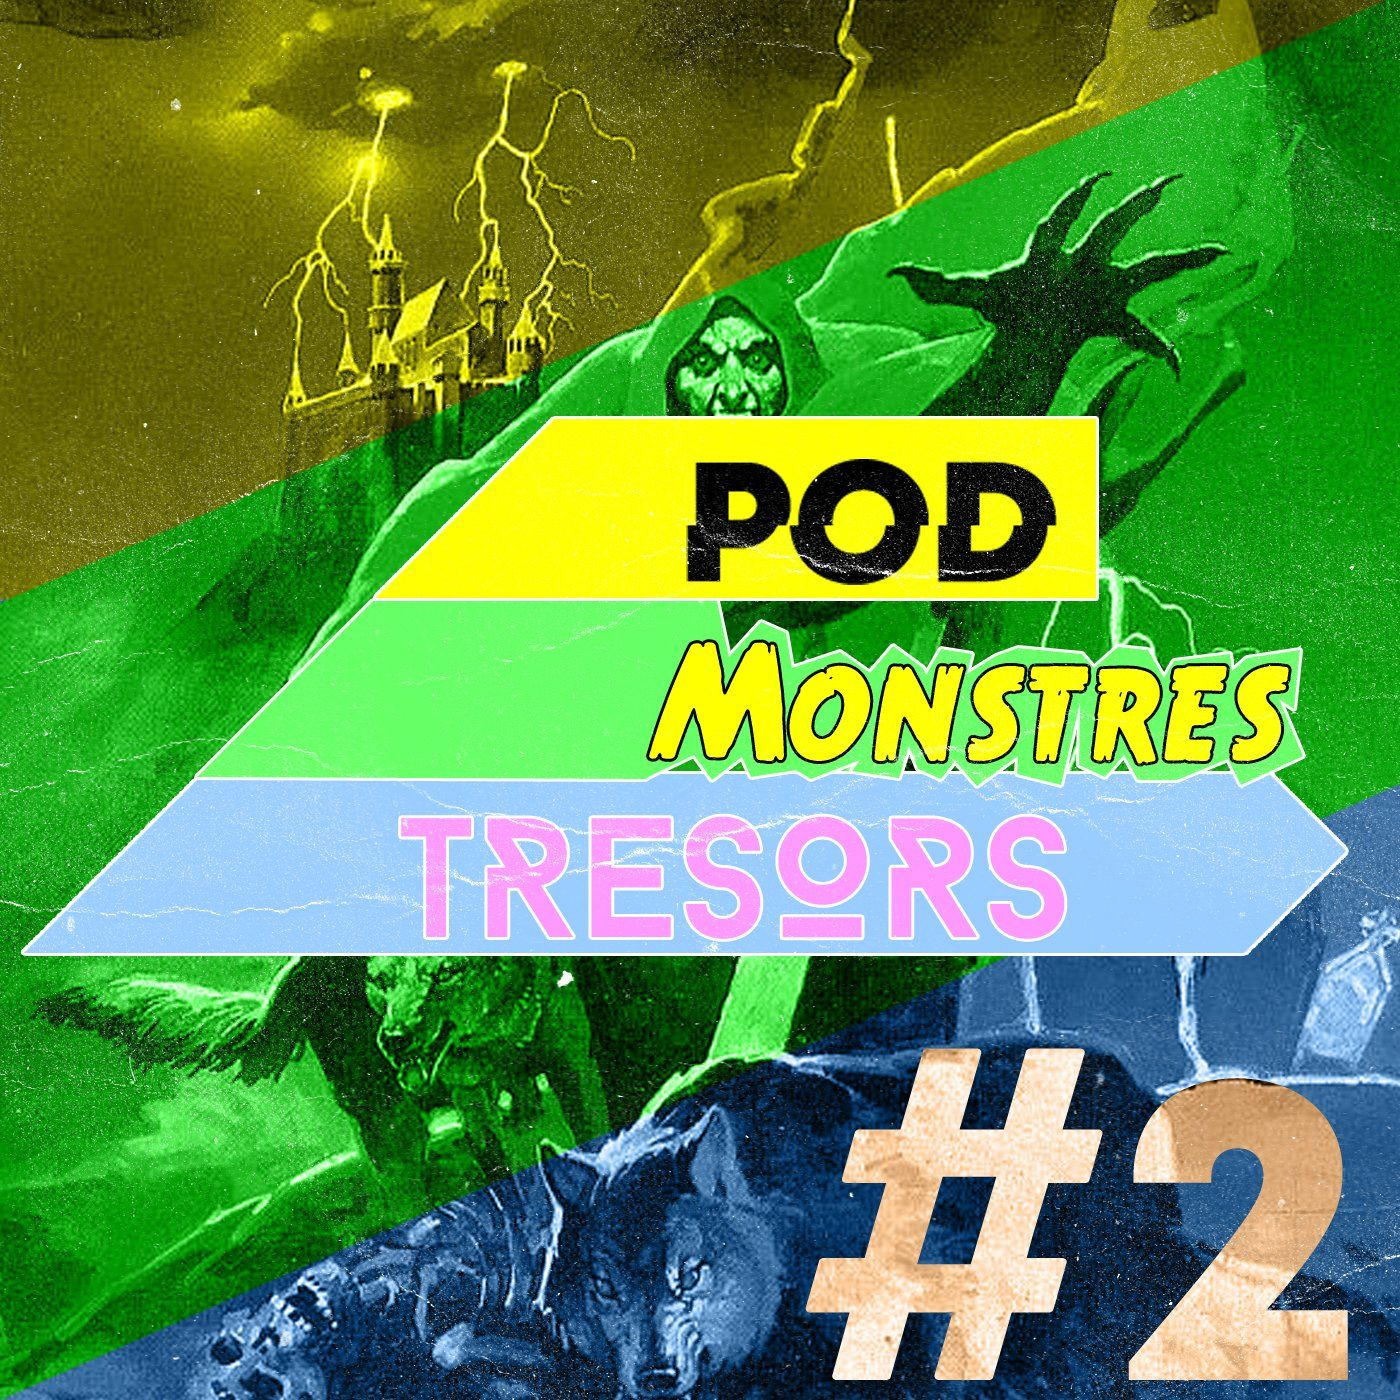 Pod Monstres Trésors - Ep 2 : Deathbringer From The Sky [Tomb. Vamp. Part. 3]